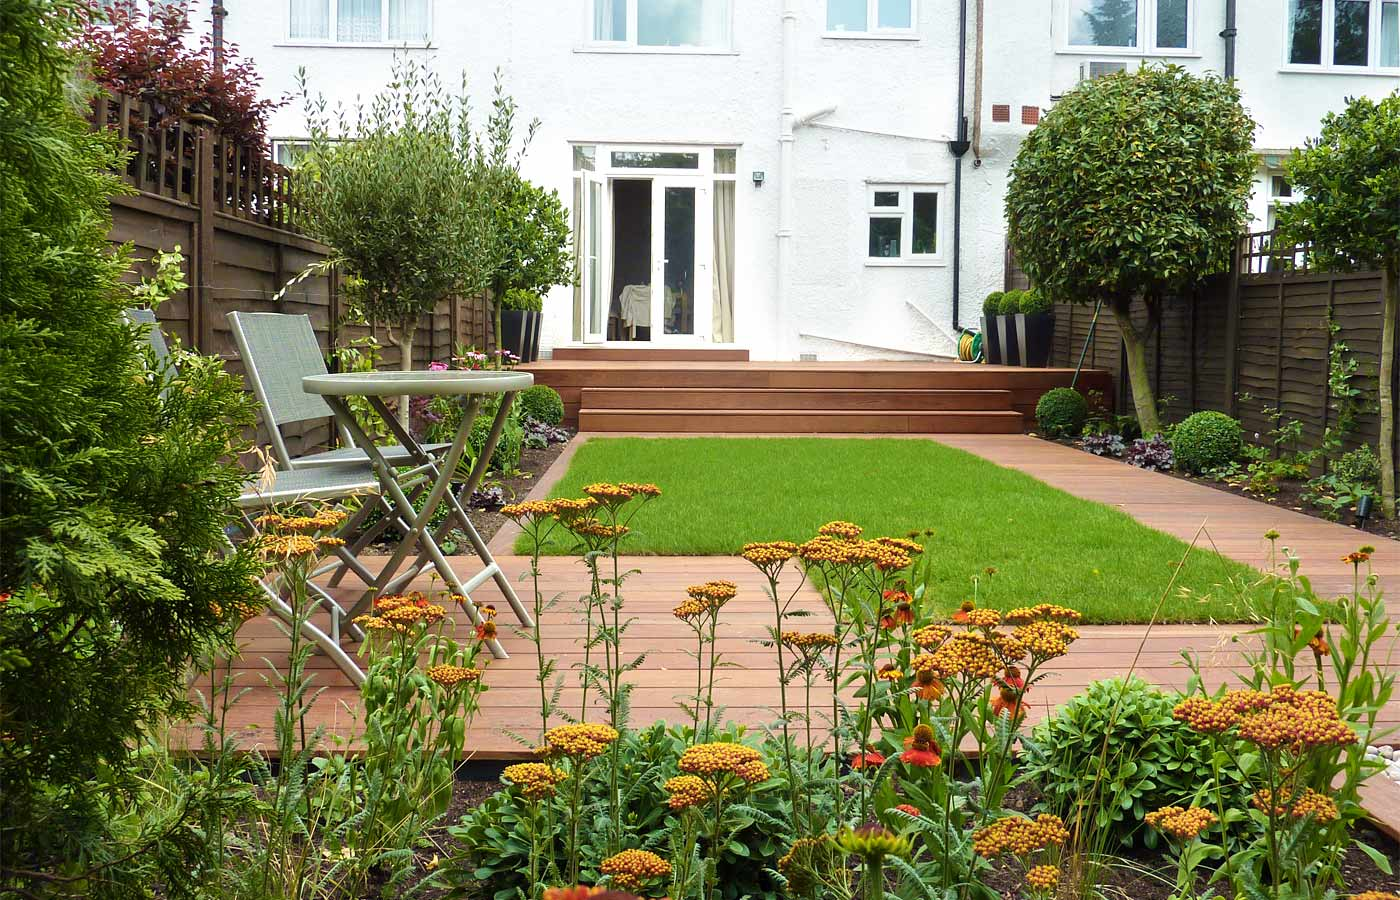 Contemporary garden design london for Small garden design uk